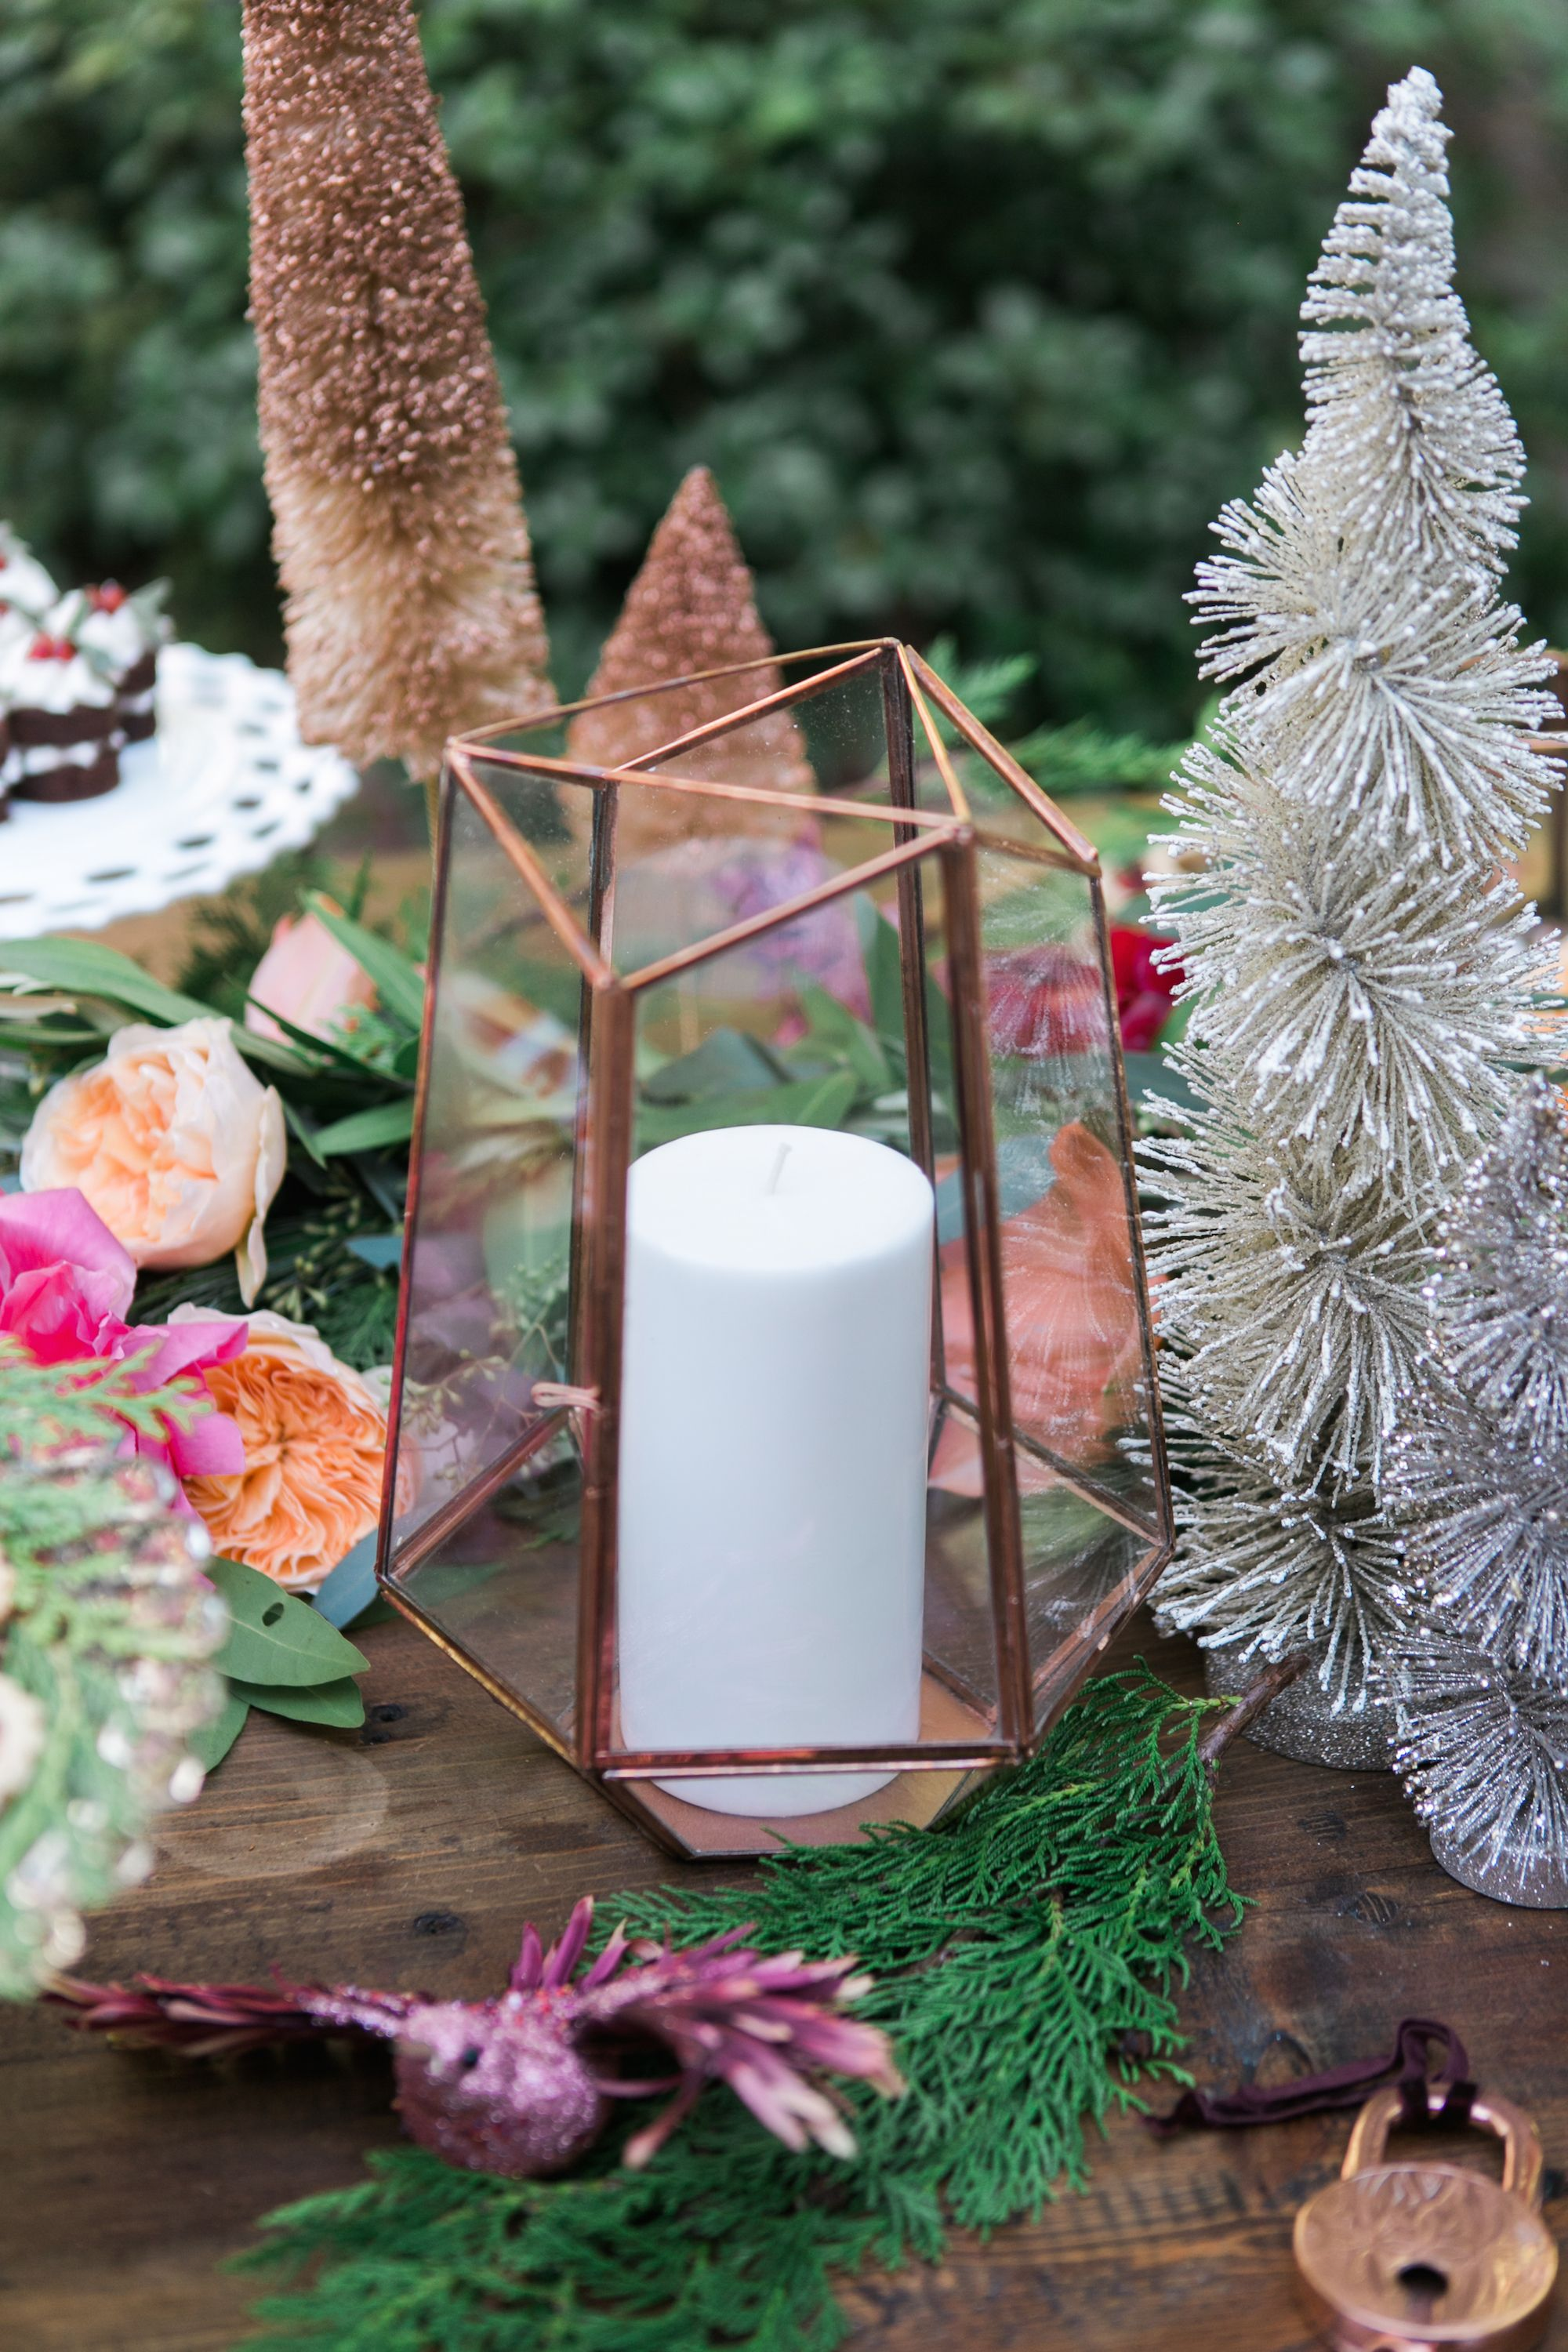 15 Best Christmas Table Decorations Ideas For Holiday Dinner